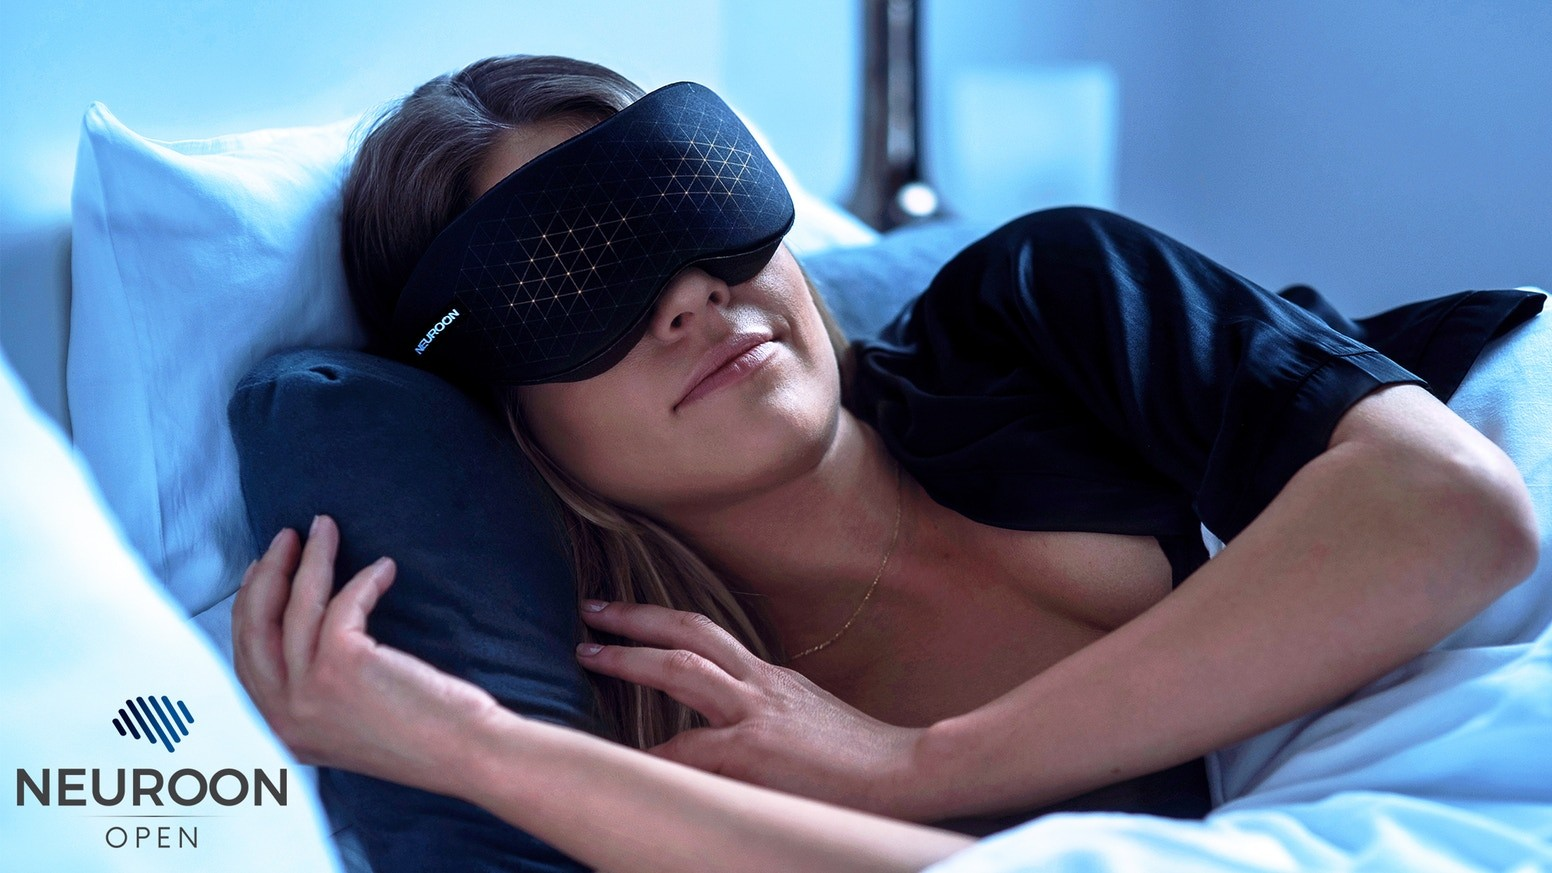 5 Technologies to Hack Your Sleep For Better Performance